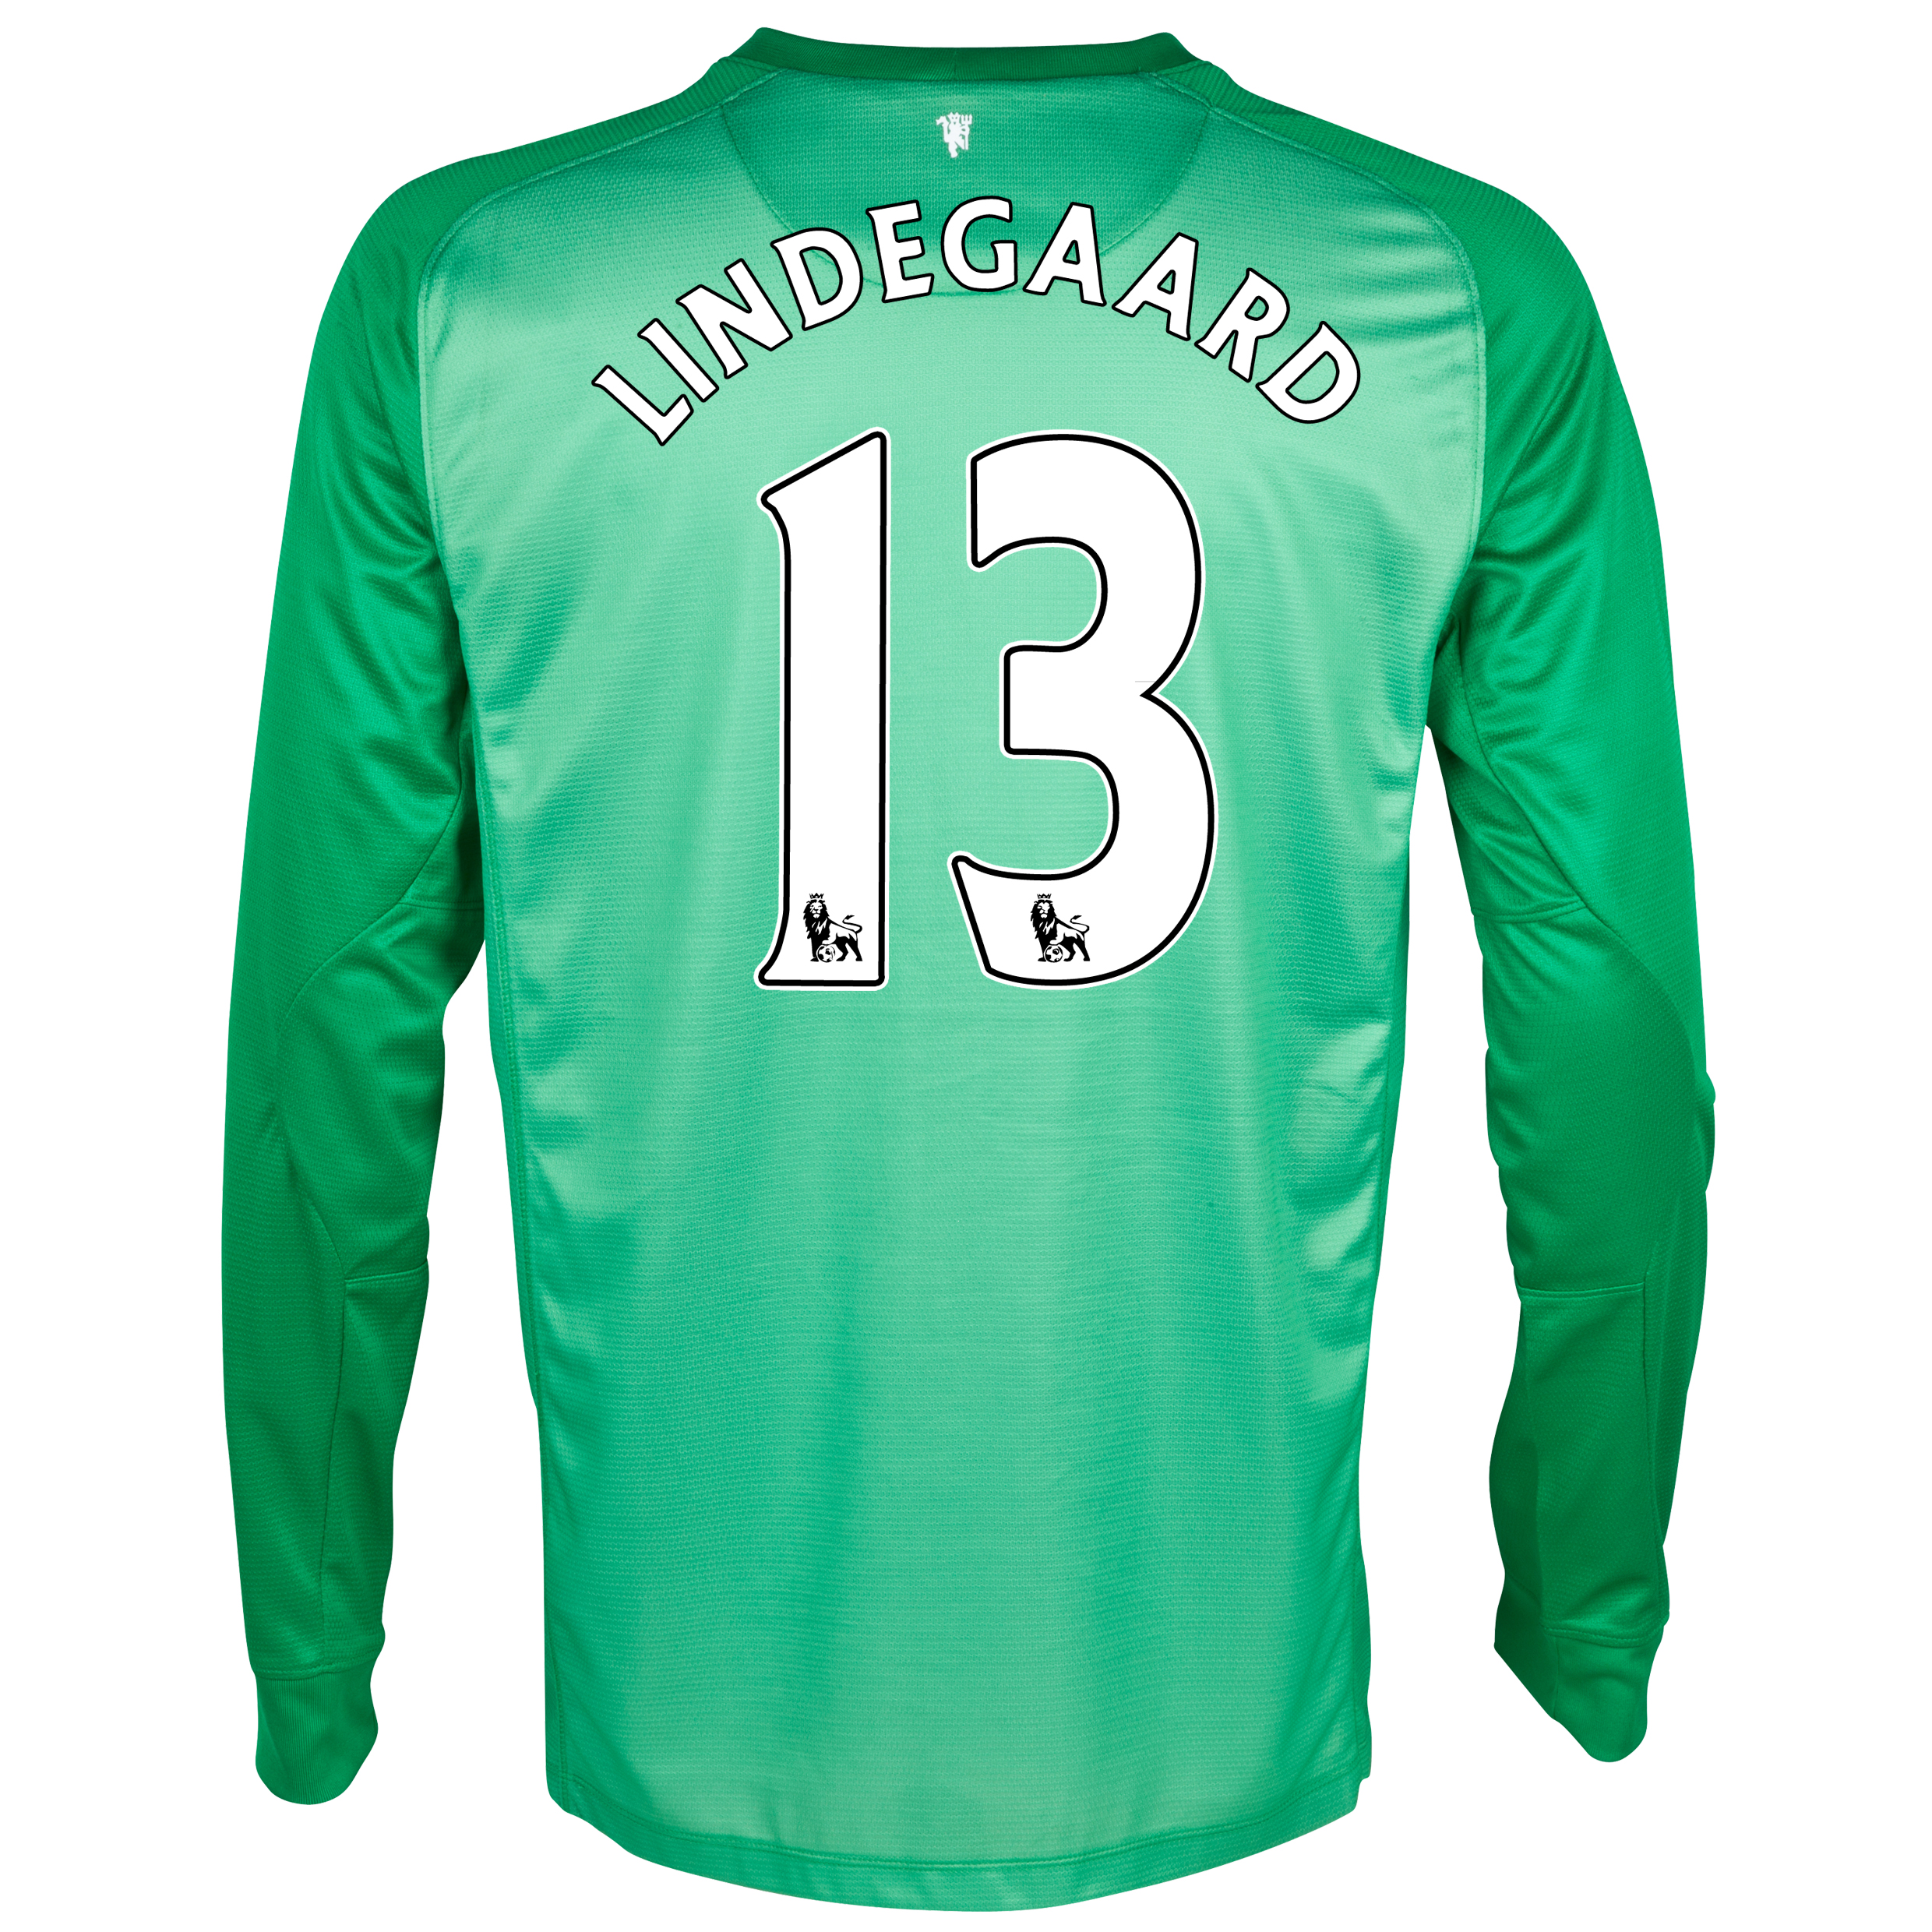 Manchester United Goalkeeper Shirt 2013/14 - Kids with Lindegaard 13 printing